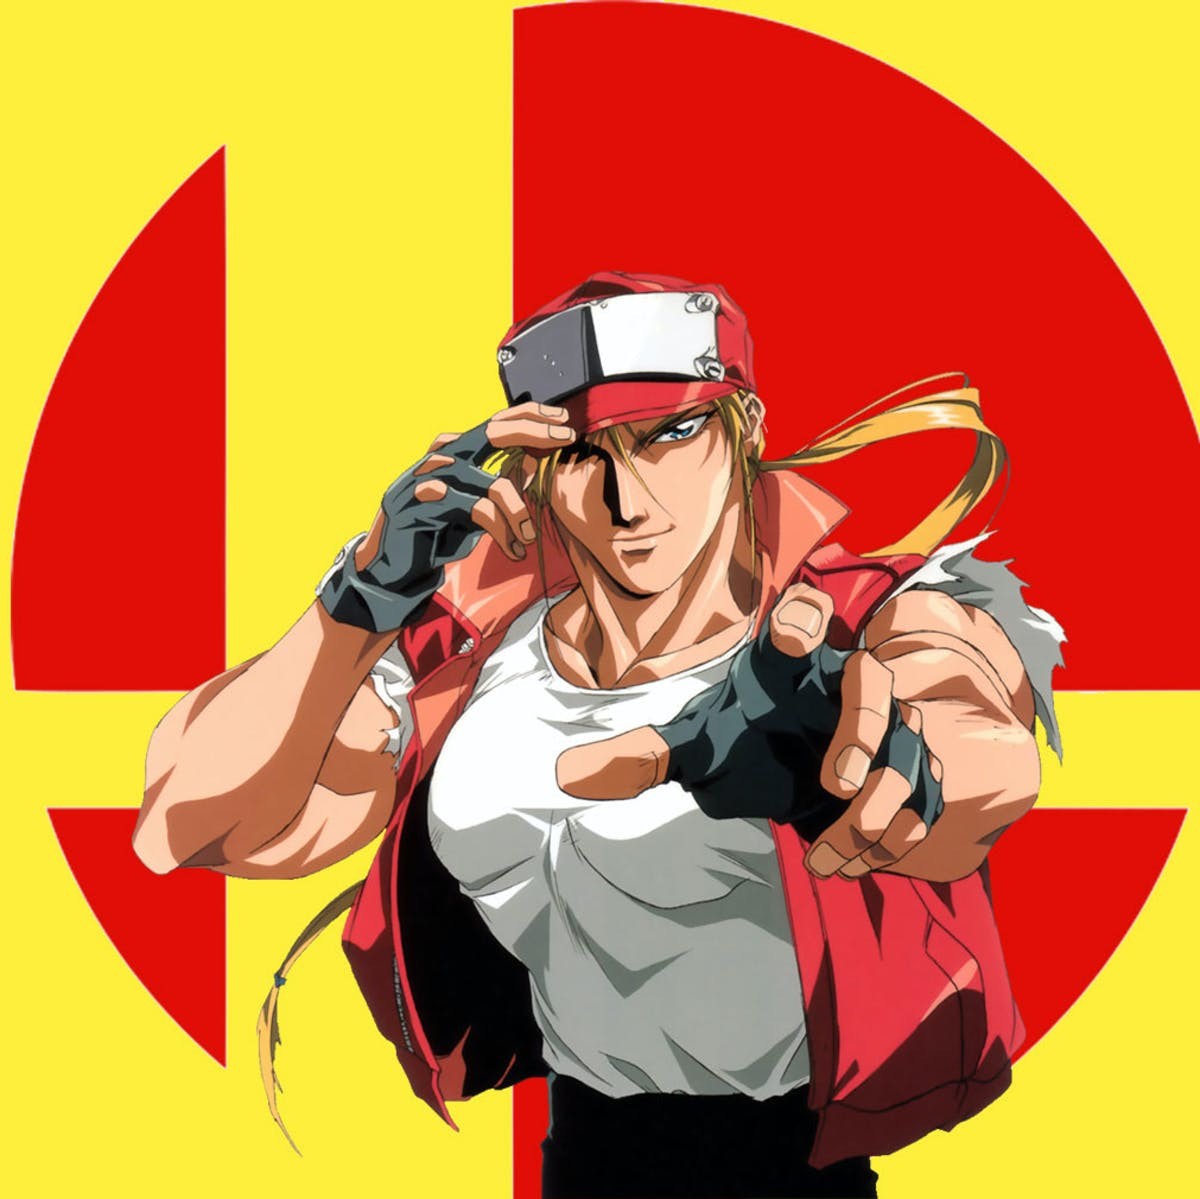 'Smash Ultimate' Terry Brogard Release Date and Moveset for the SNK DLC